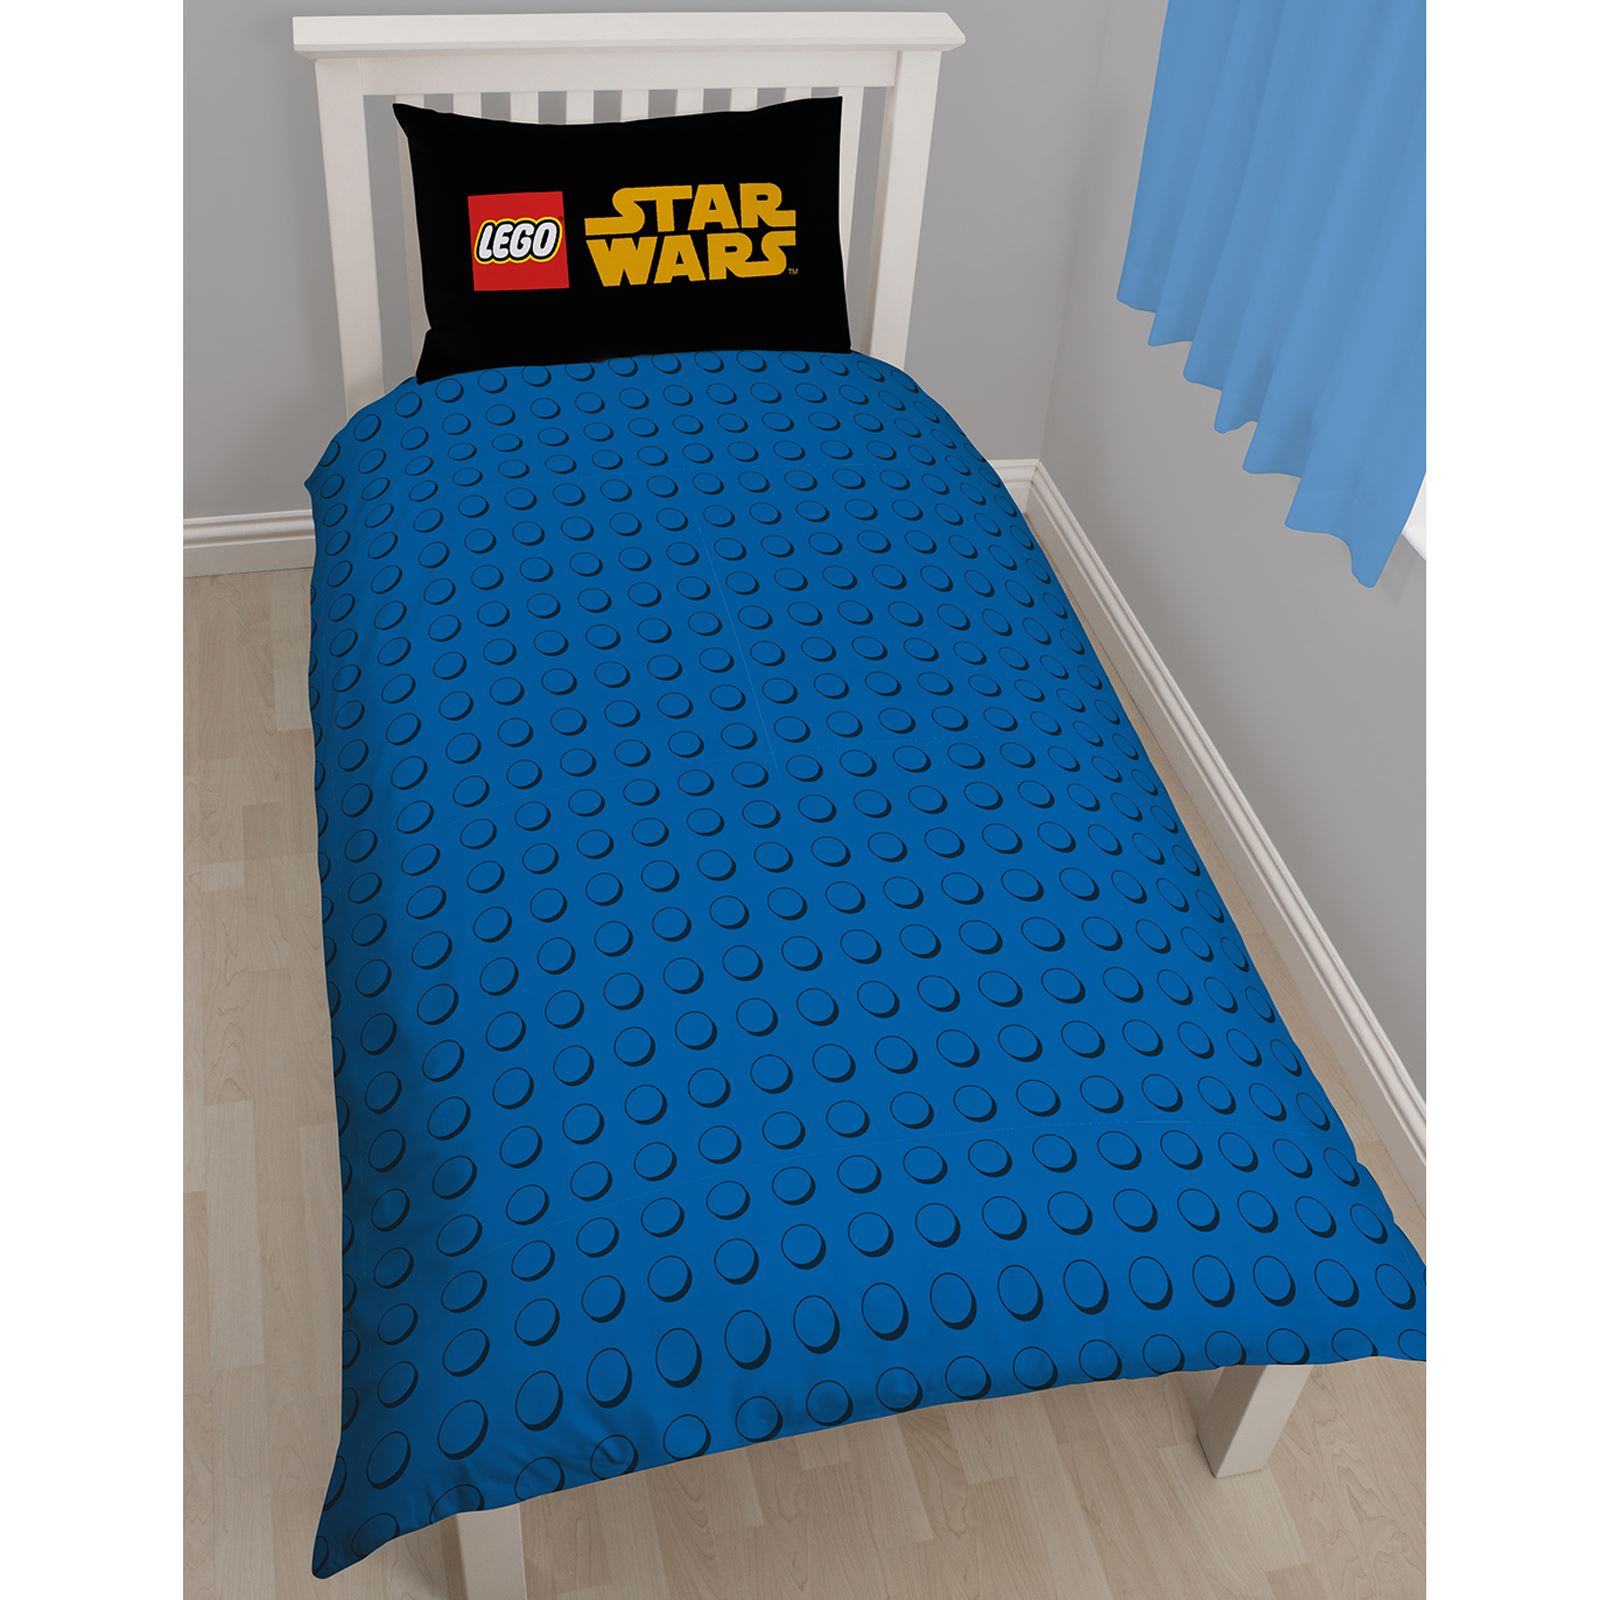 lego star wars 39 raum 39 einzelbettbezug set neu bettw sche. Black Bedroom Furniture Sets. Home Design Ideas